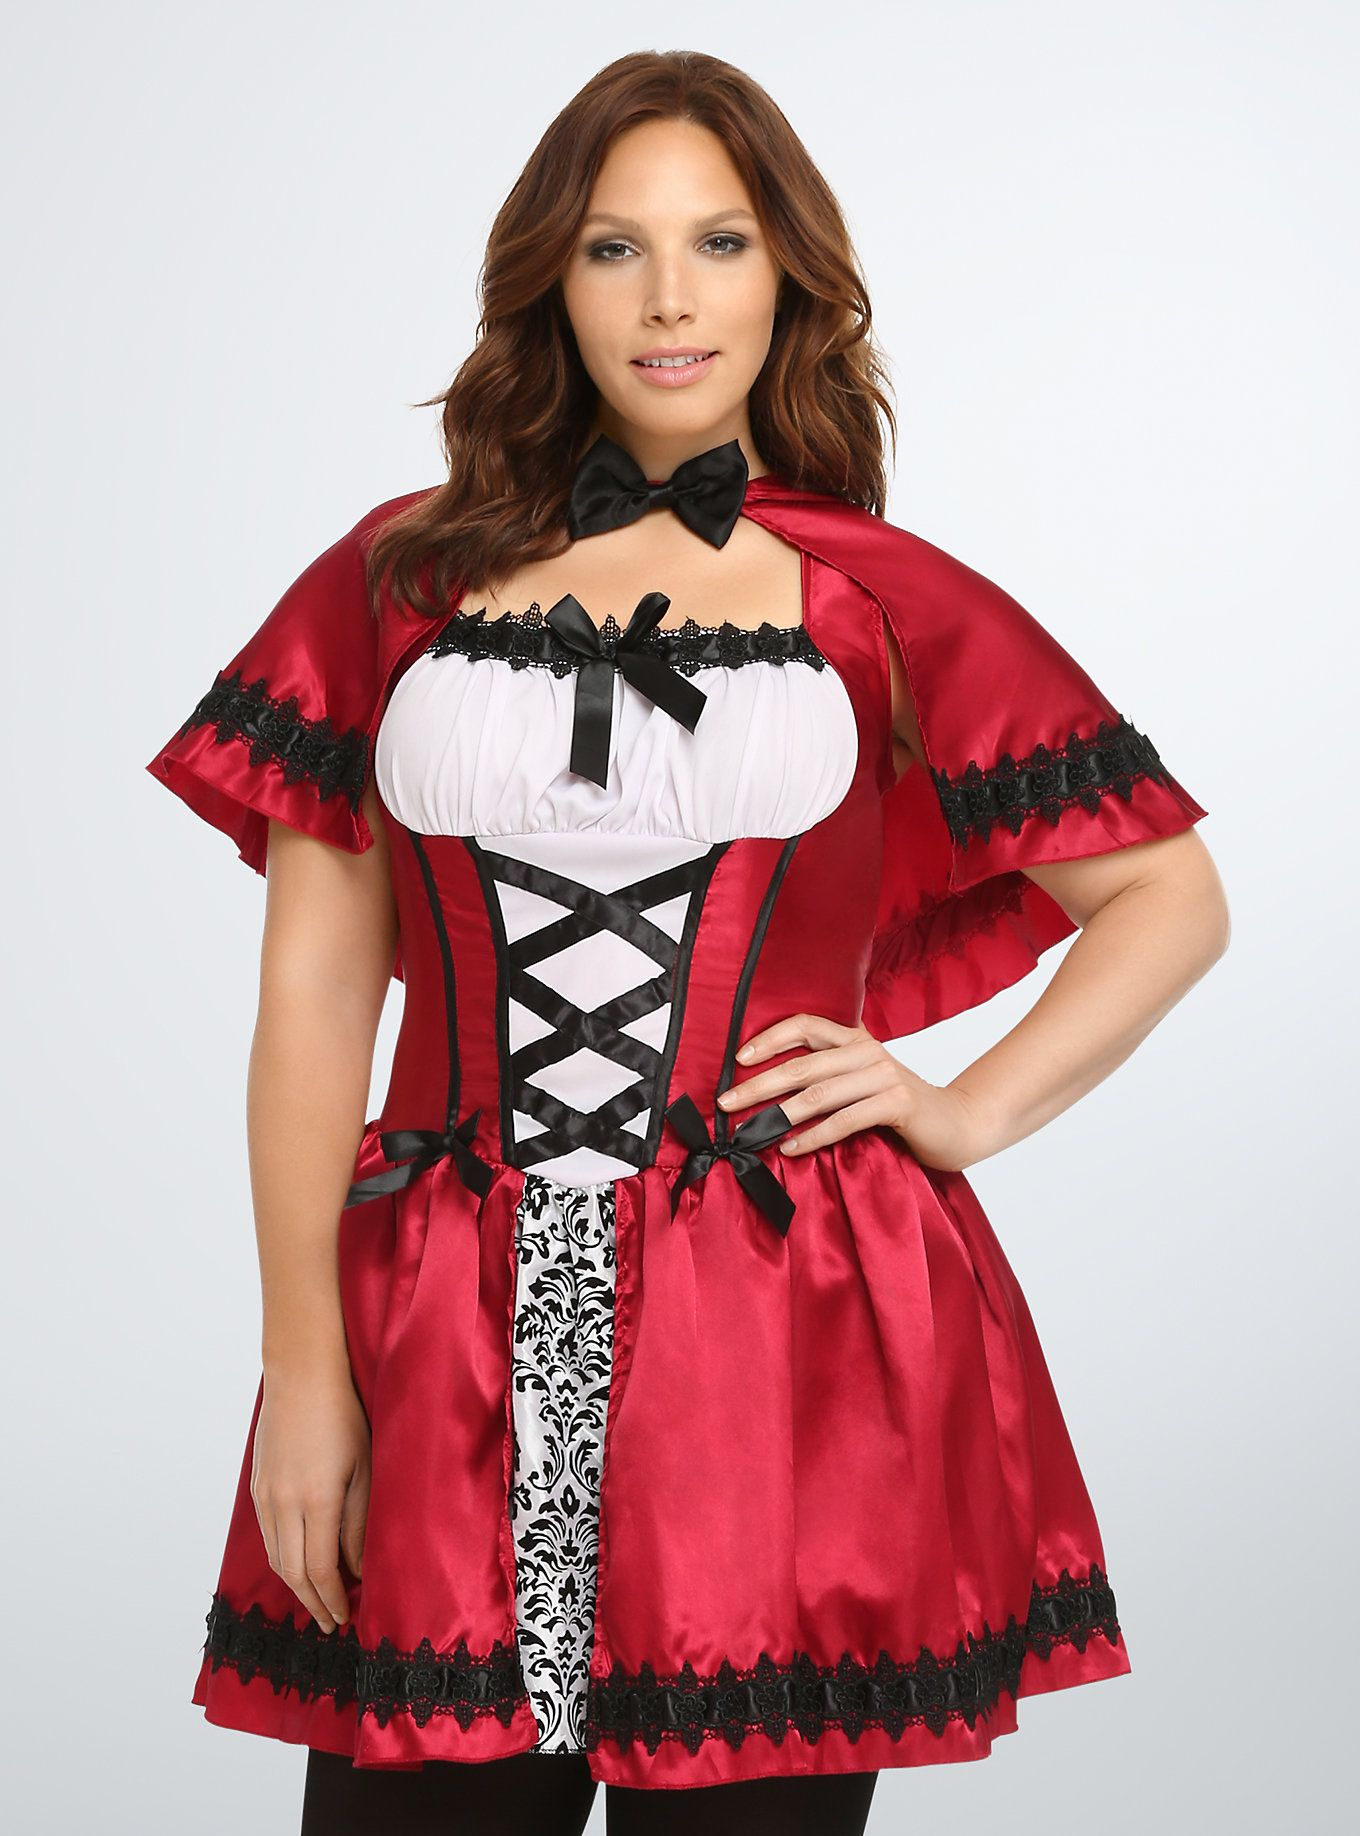 Red Riding Hood Costume Dress Red riding hood costume